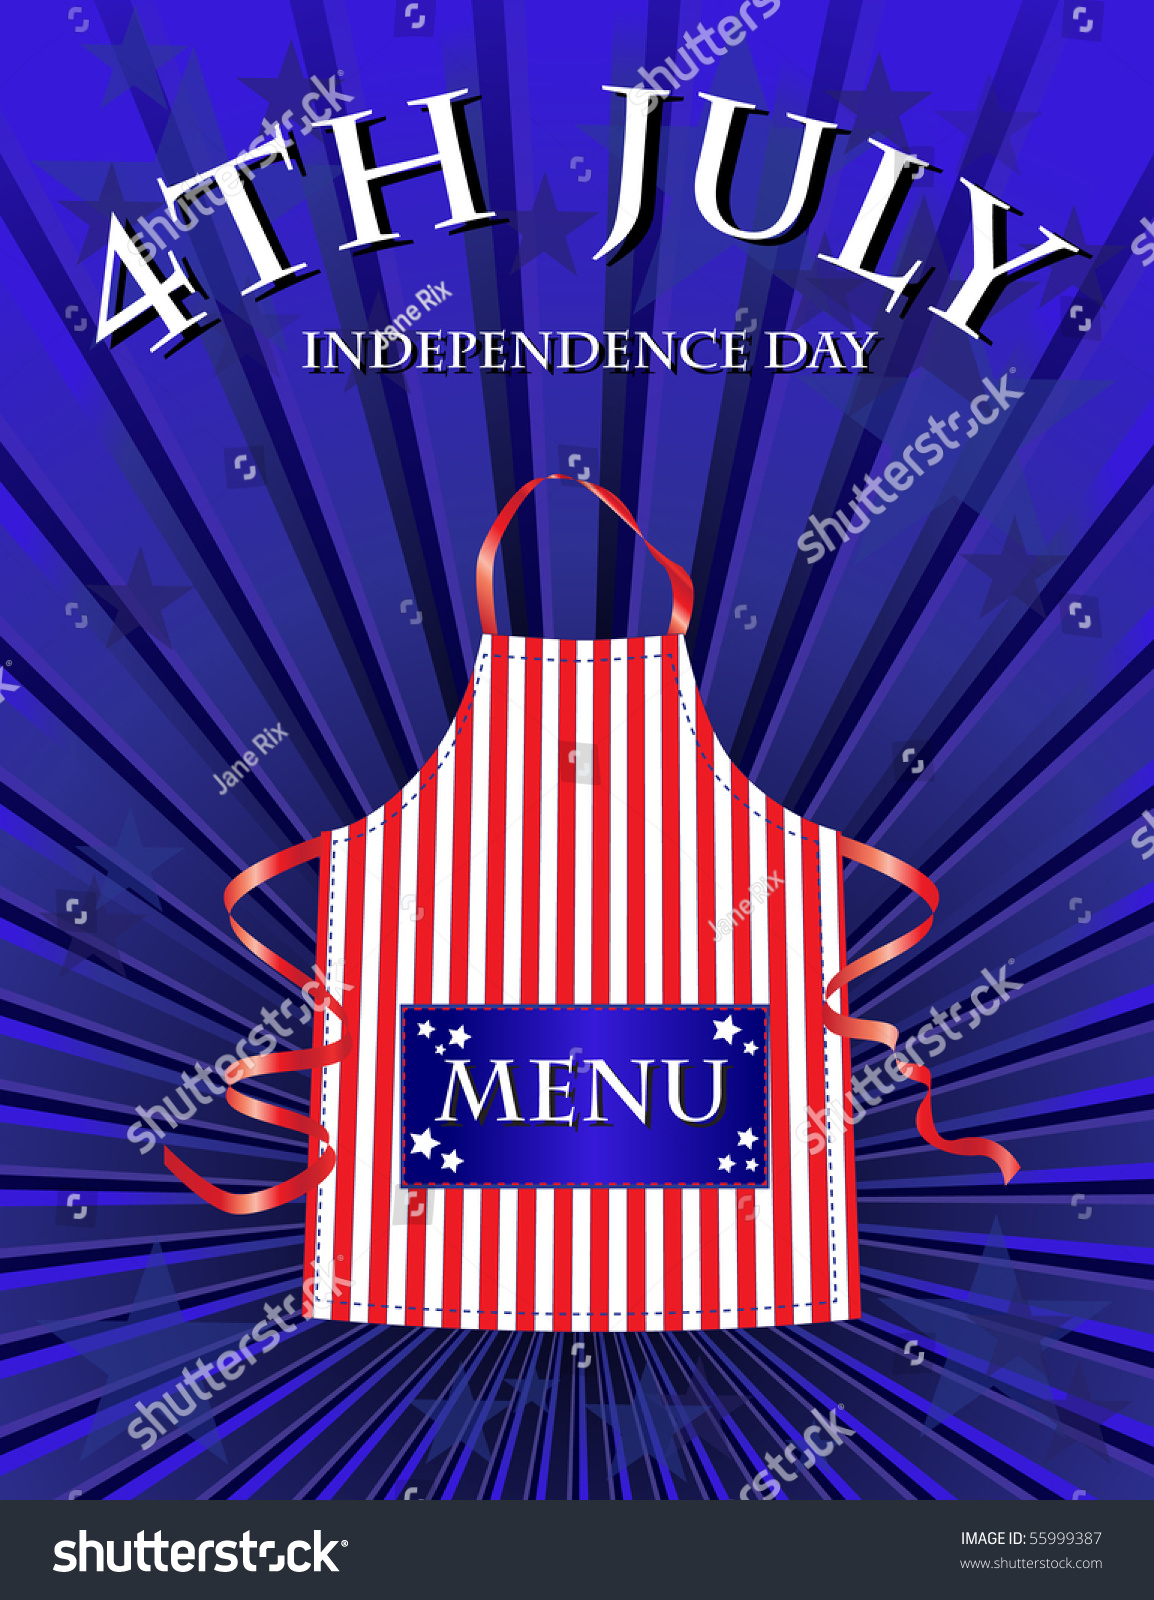 A 4th july independence day menu template stock photo for 4th of july menu template